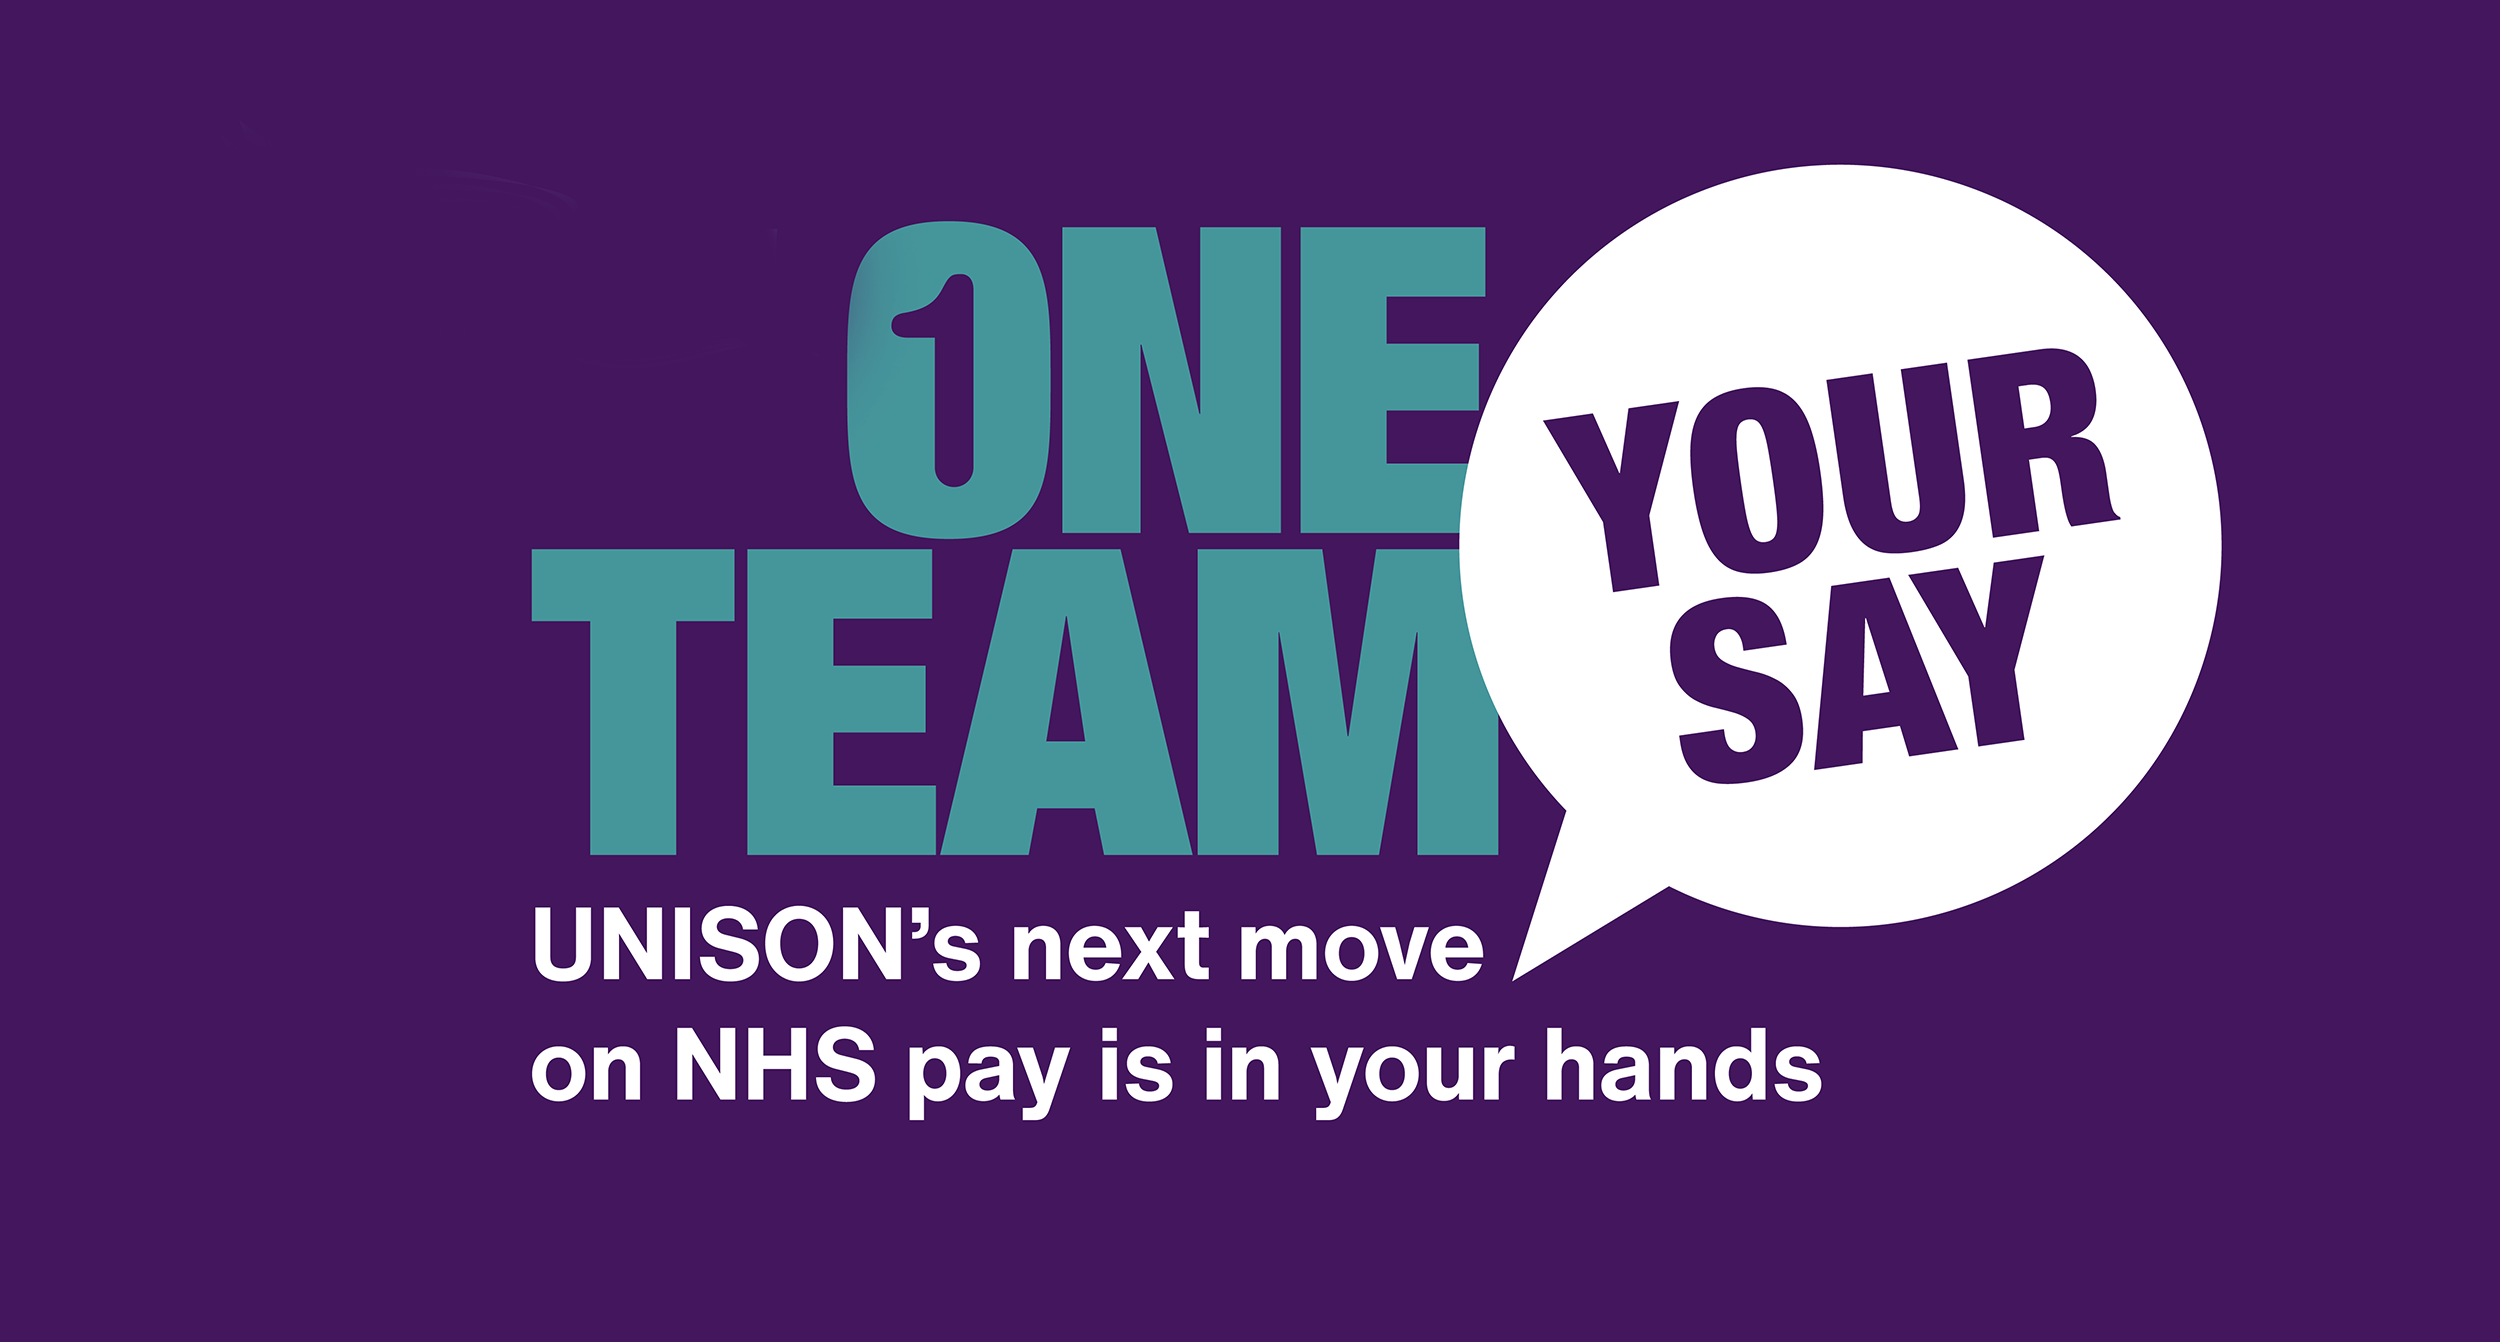 One Team, Your Say. UNISON's next move on NHS pay is in your hands.